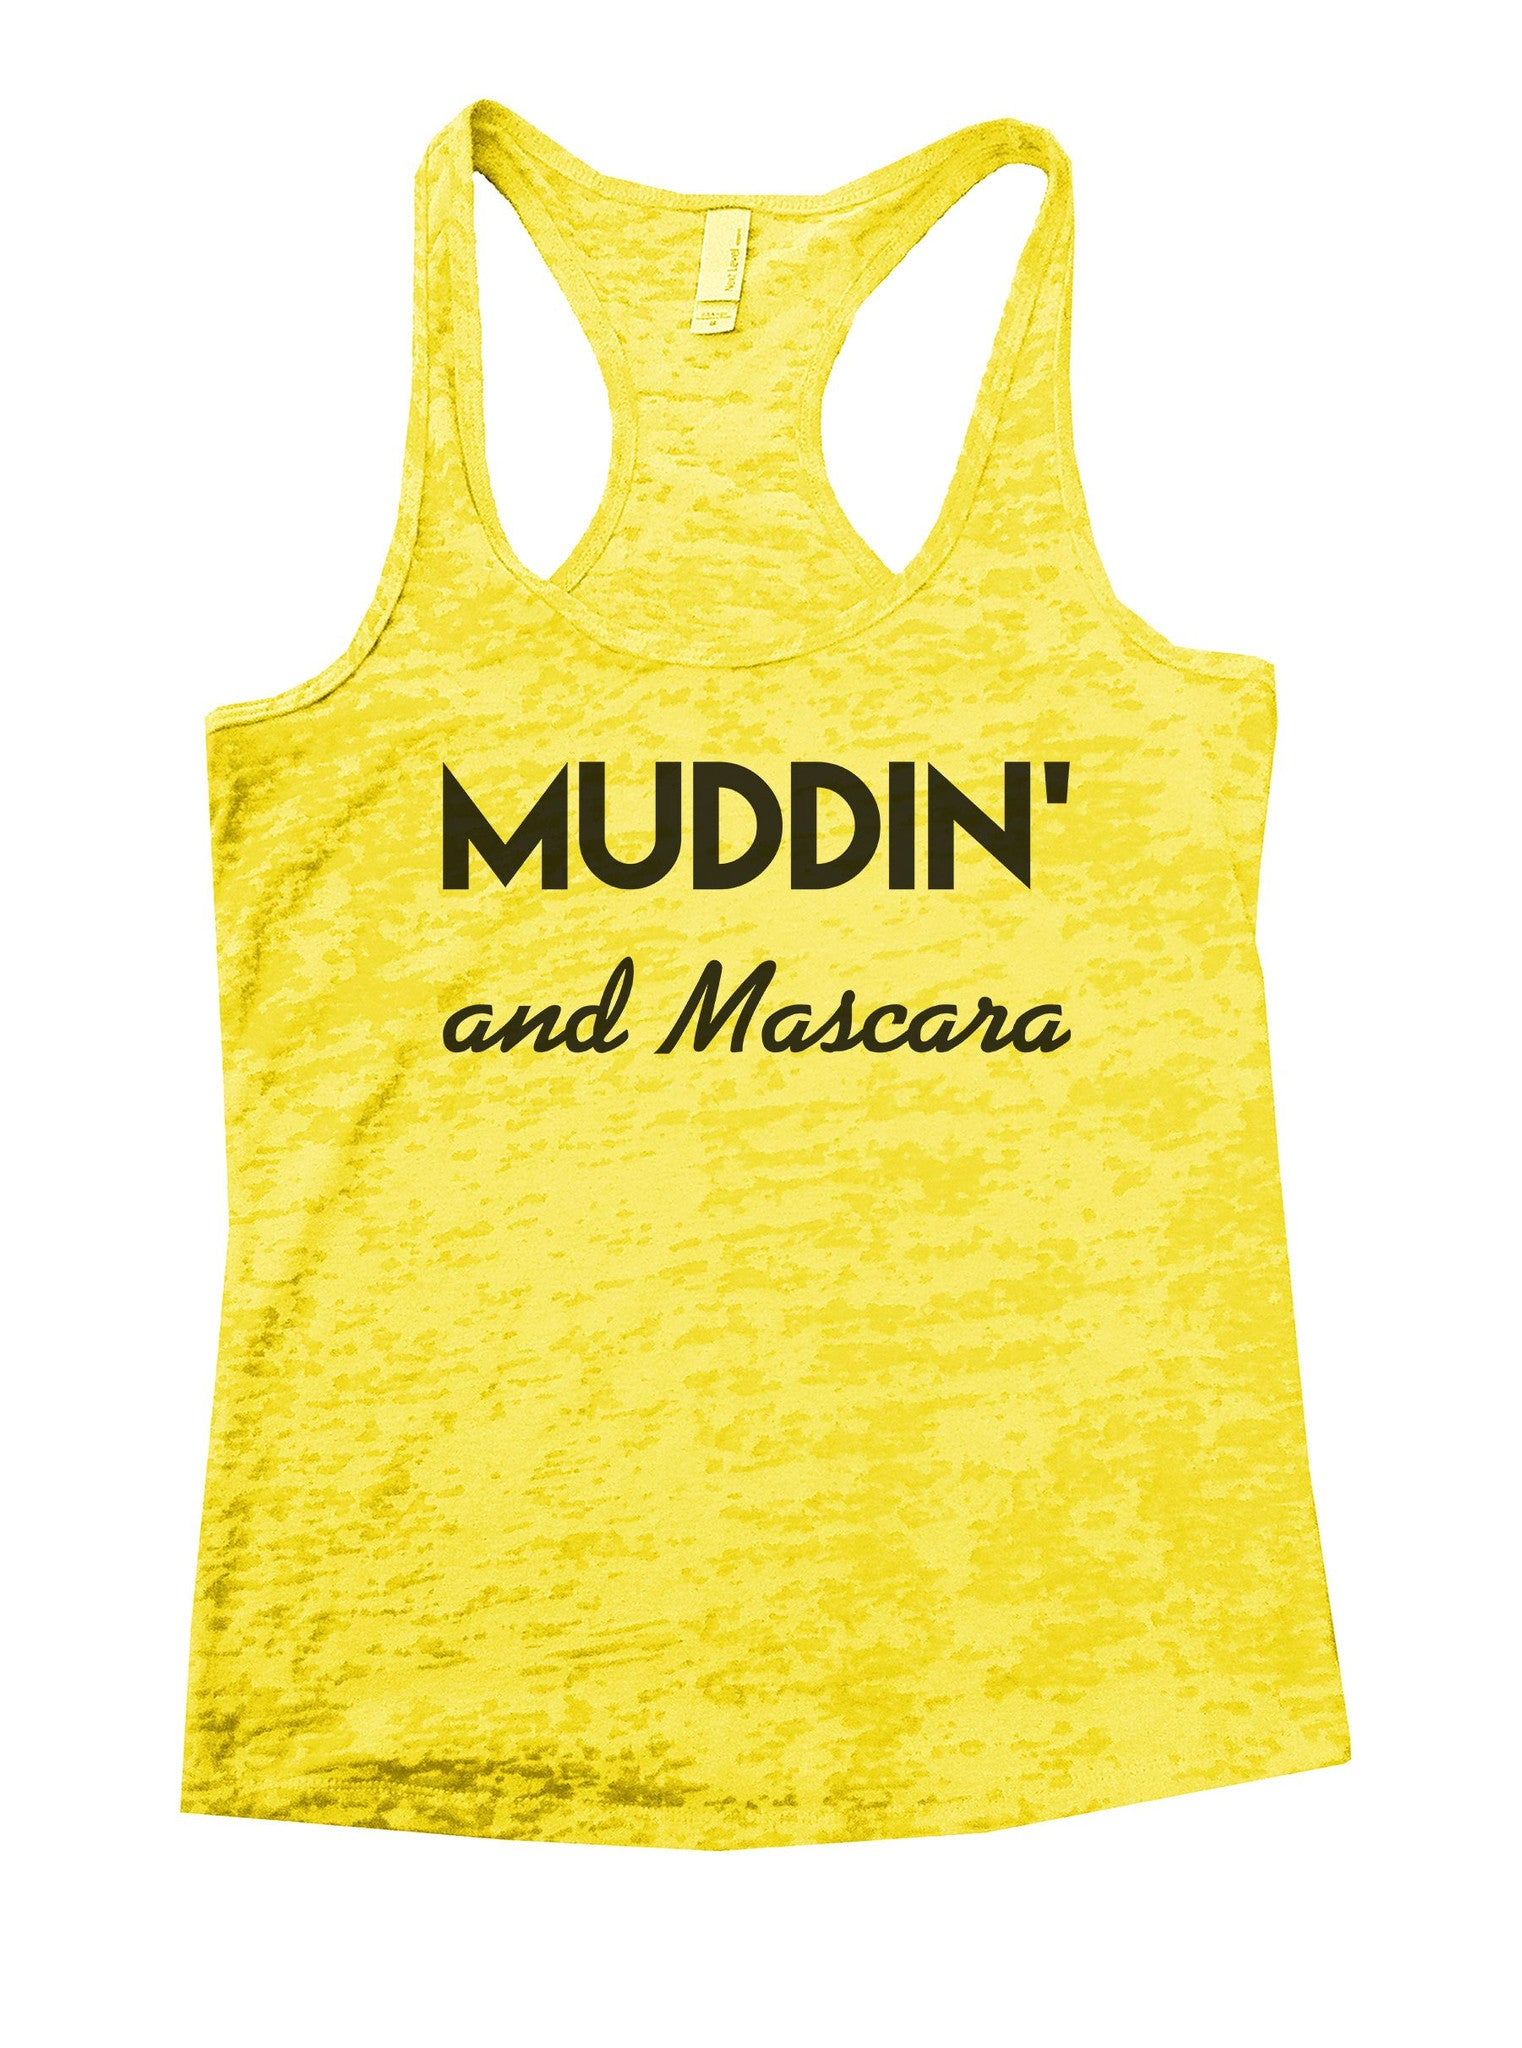 Muddin And Mascara Burnout Tank Top By BurnoutTankTops.com - 803 - Funny Shirts Tank Tops Burnouts and Triblends  - 6